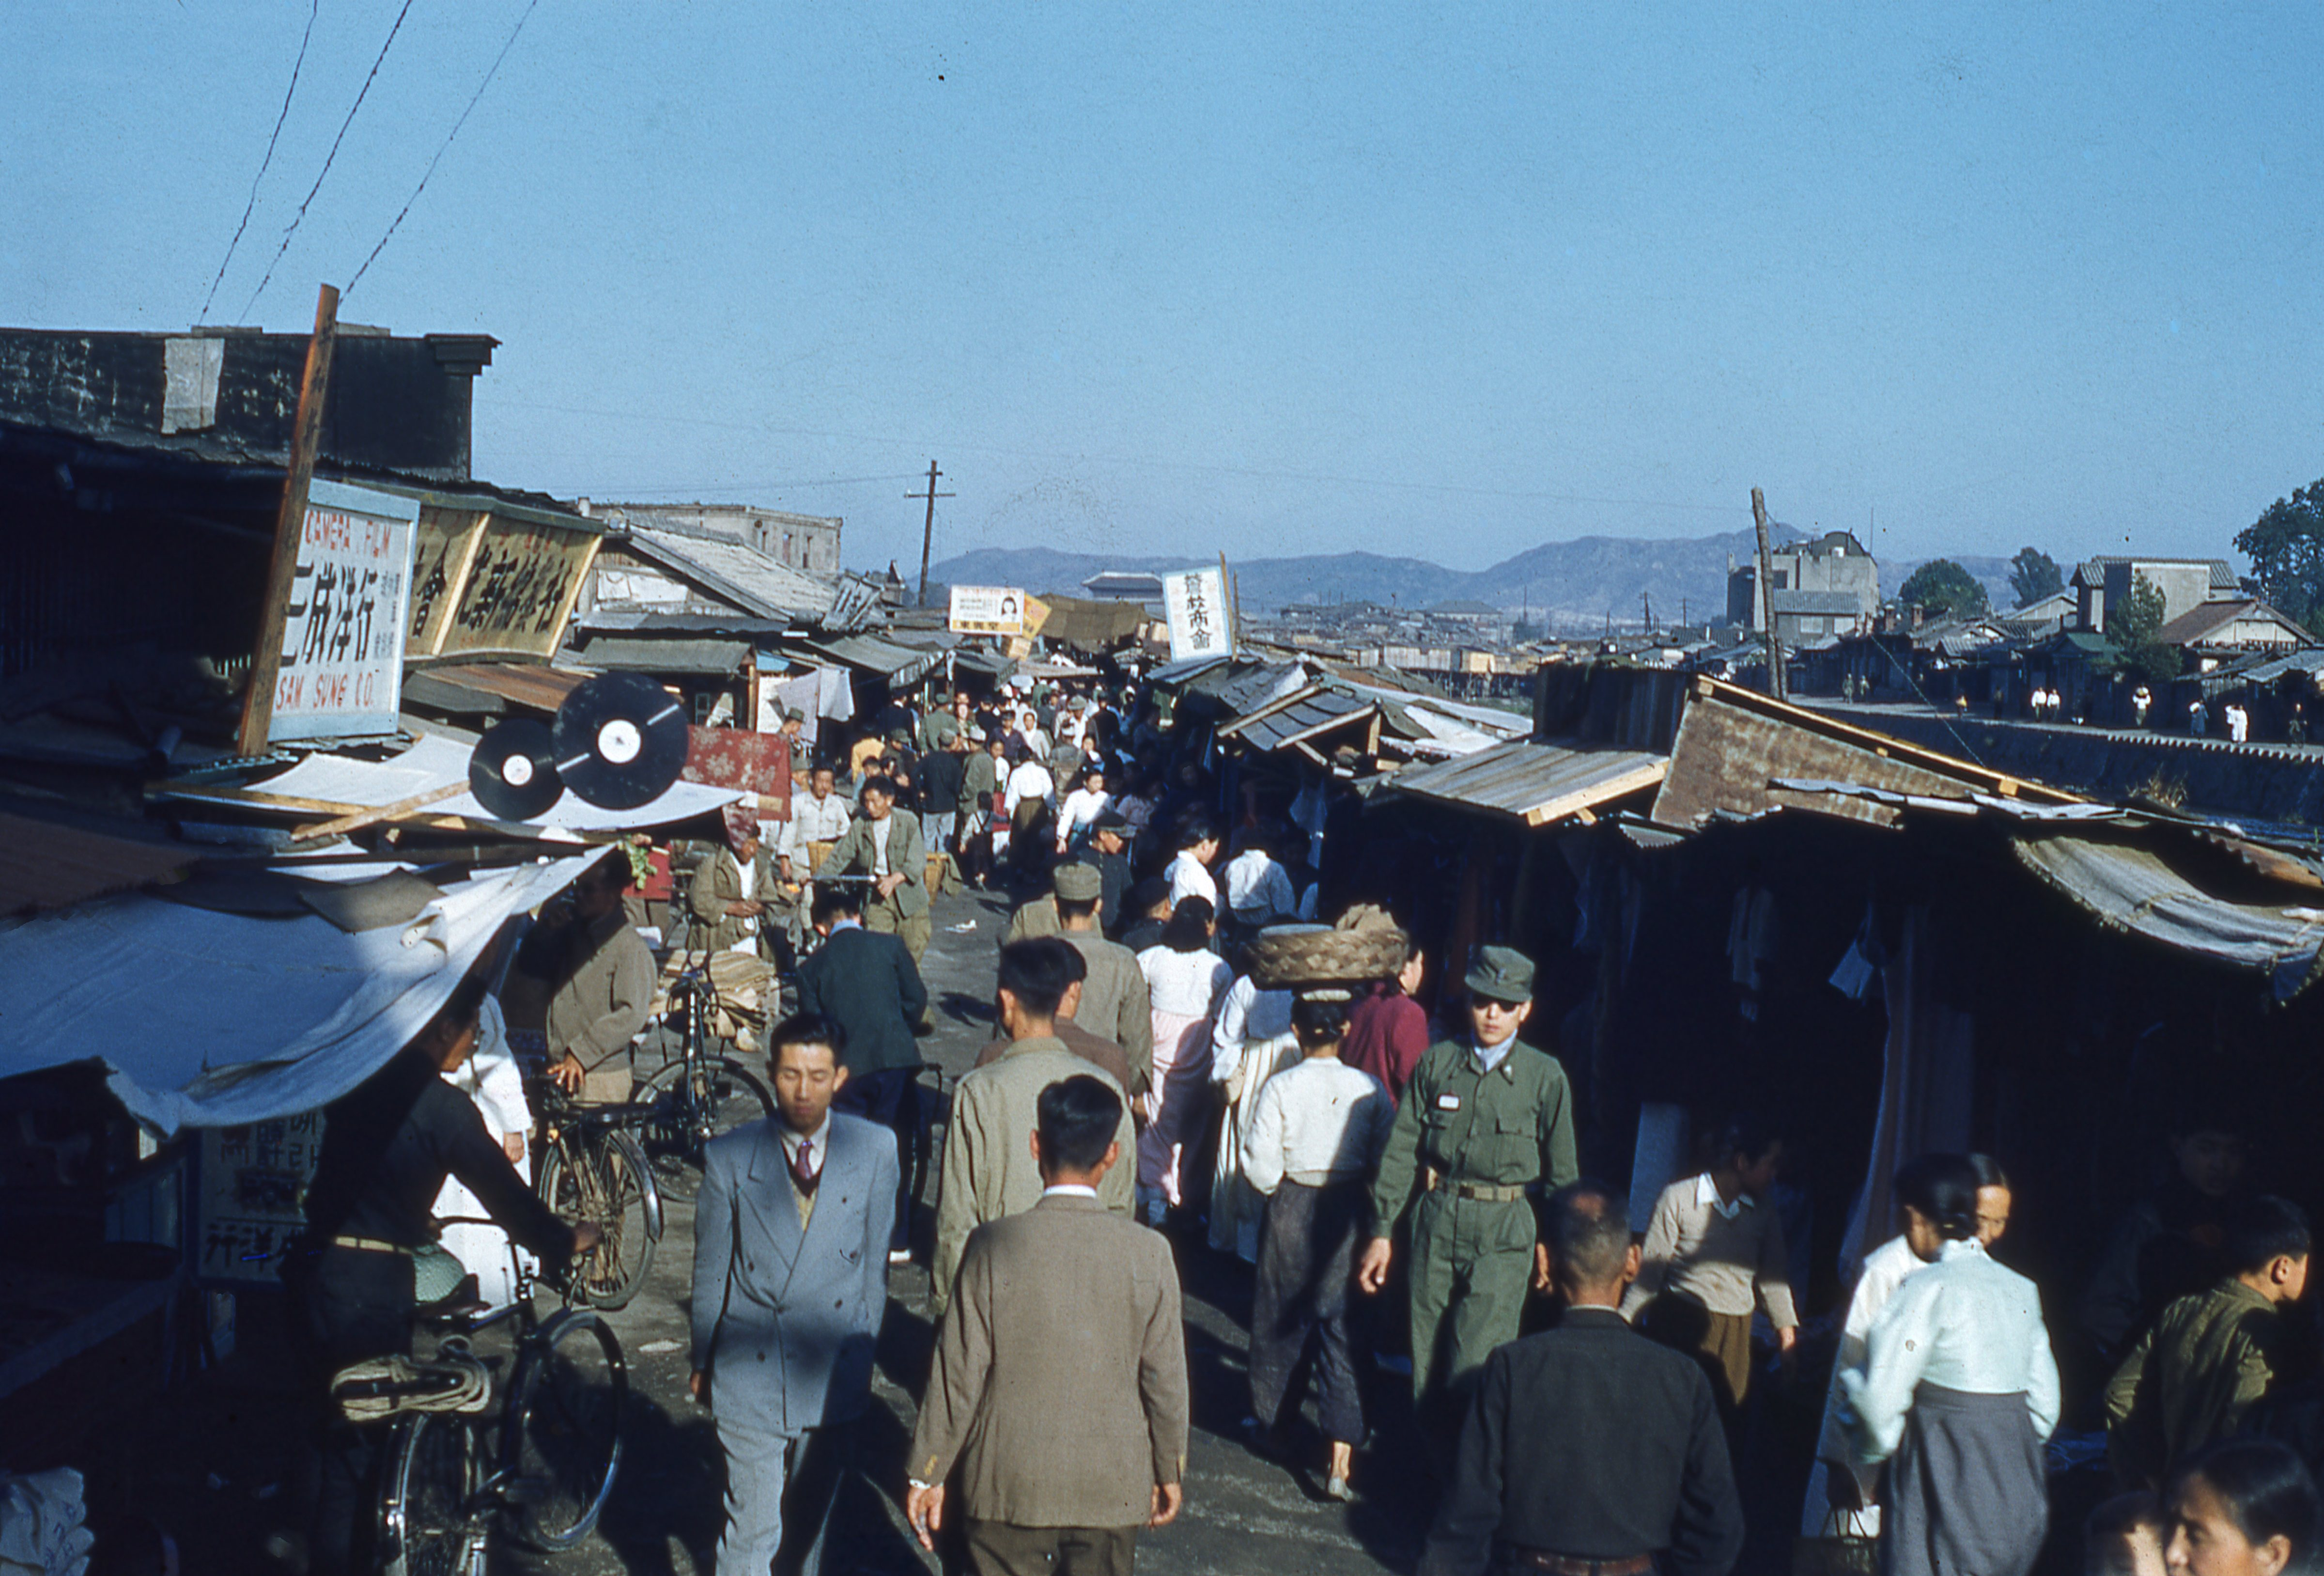 a market in Seoul, South Korea, in the 1950s